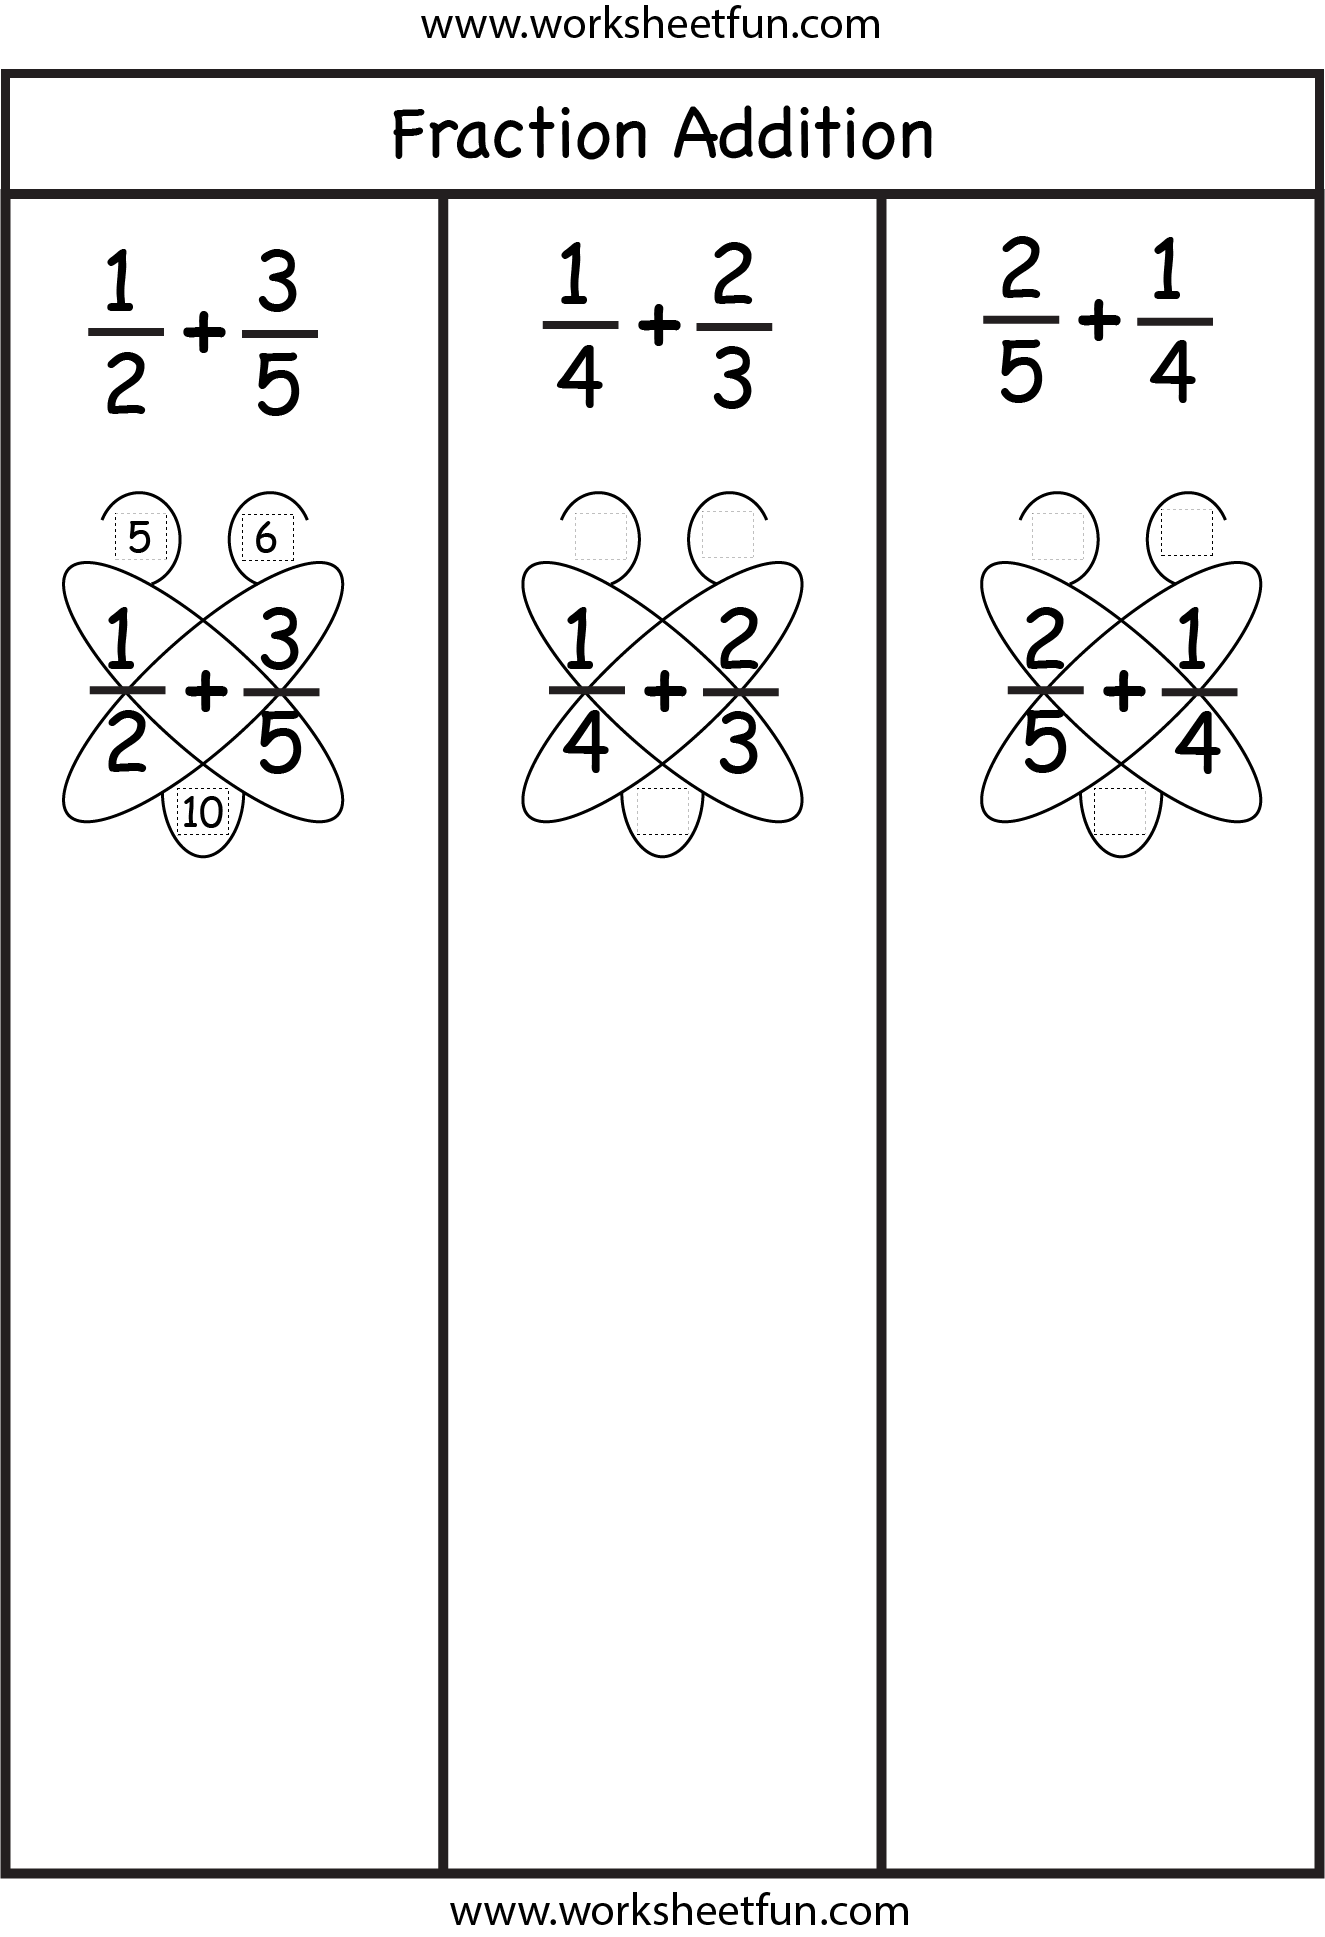 Fraction Addition - Butterfly Method Where has this been all my life ...